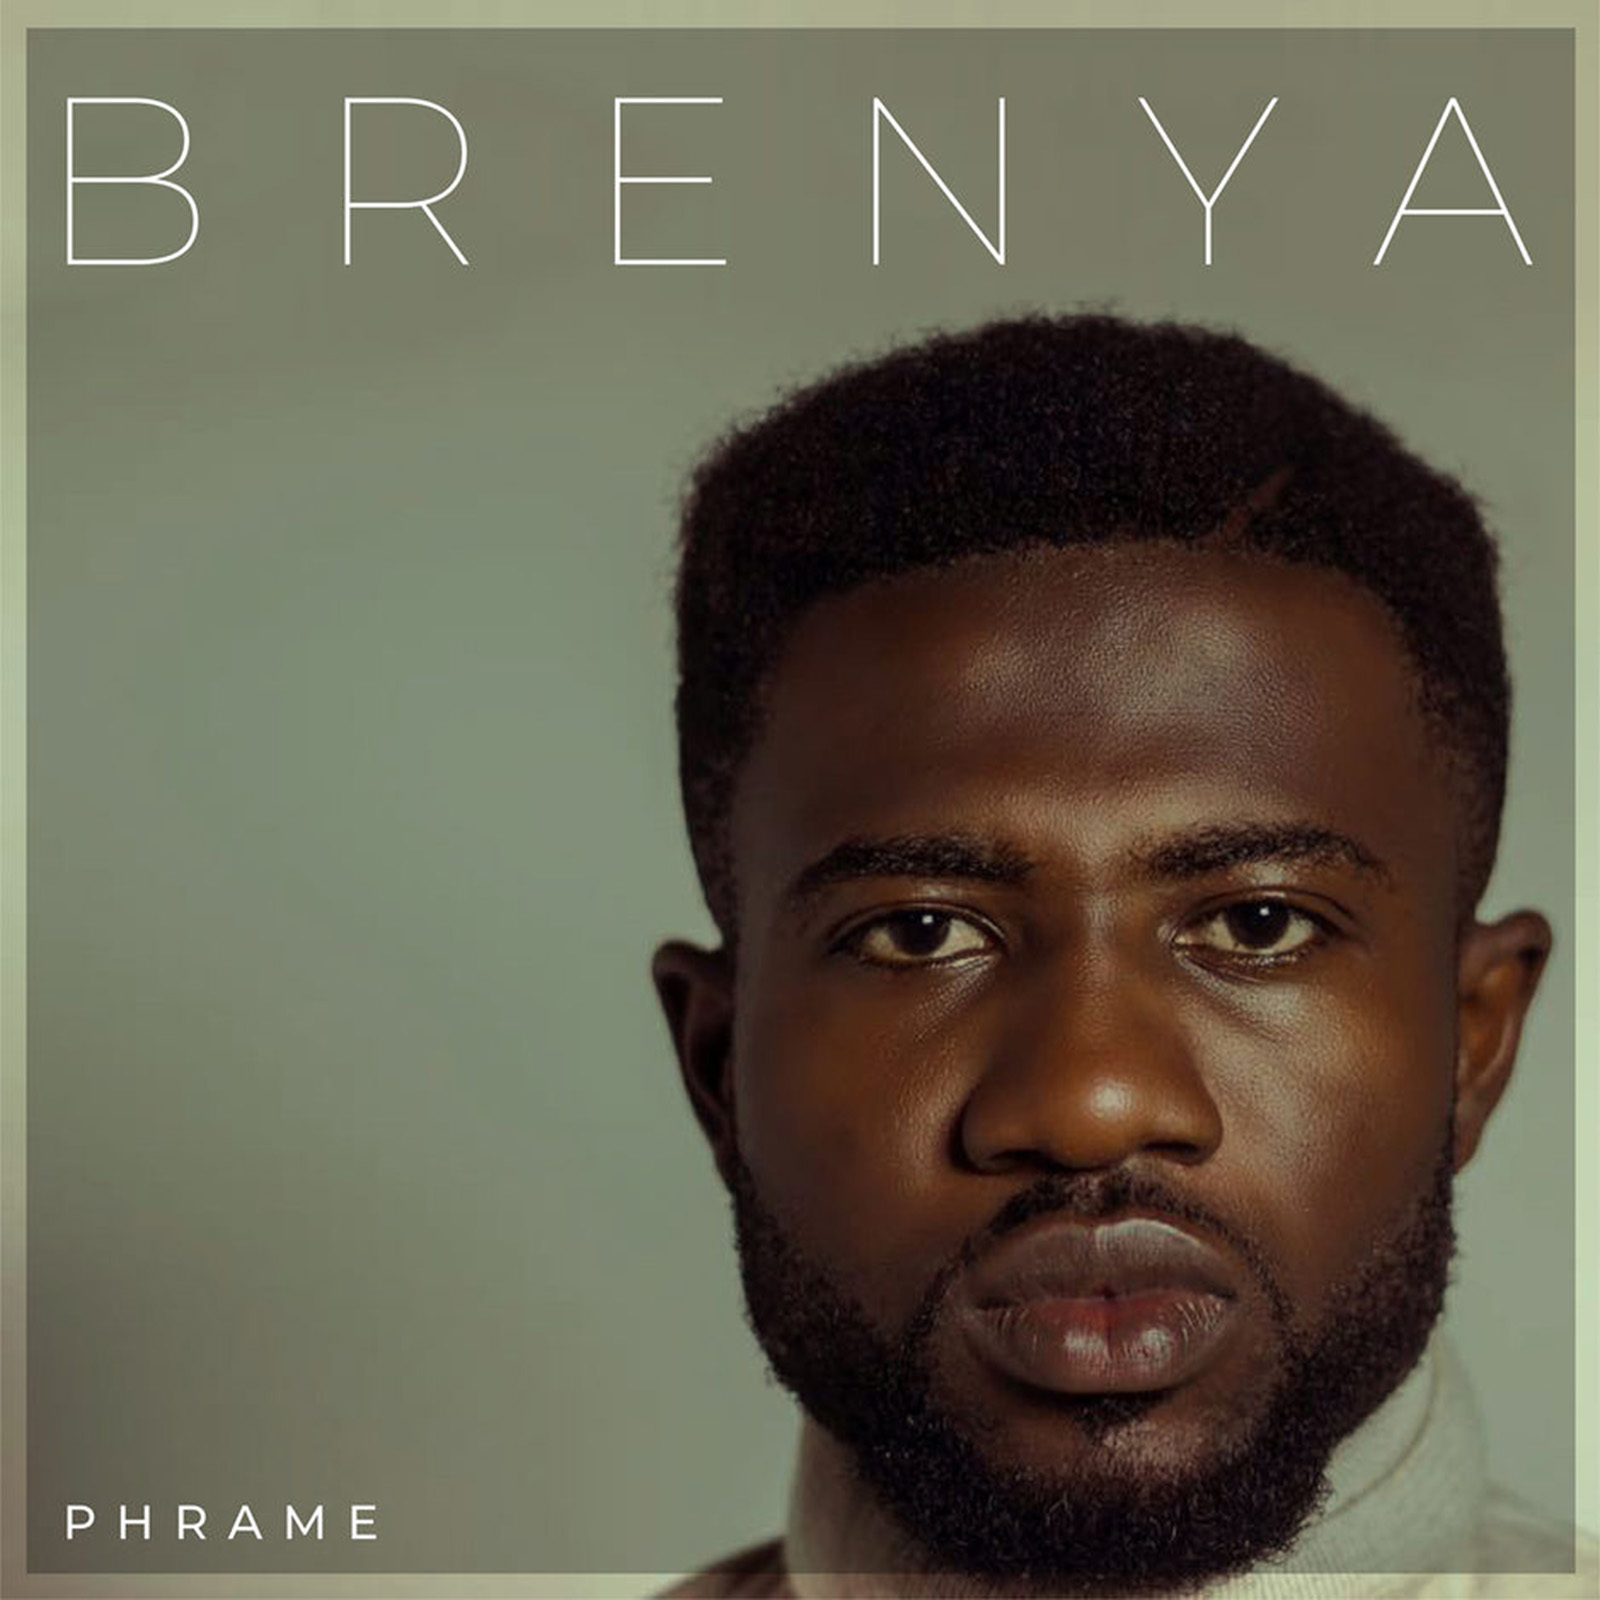 Brenya Album by Phrame